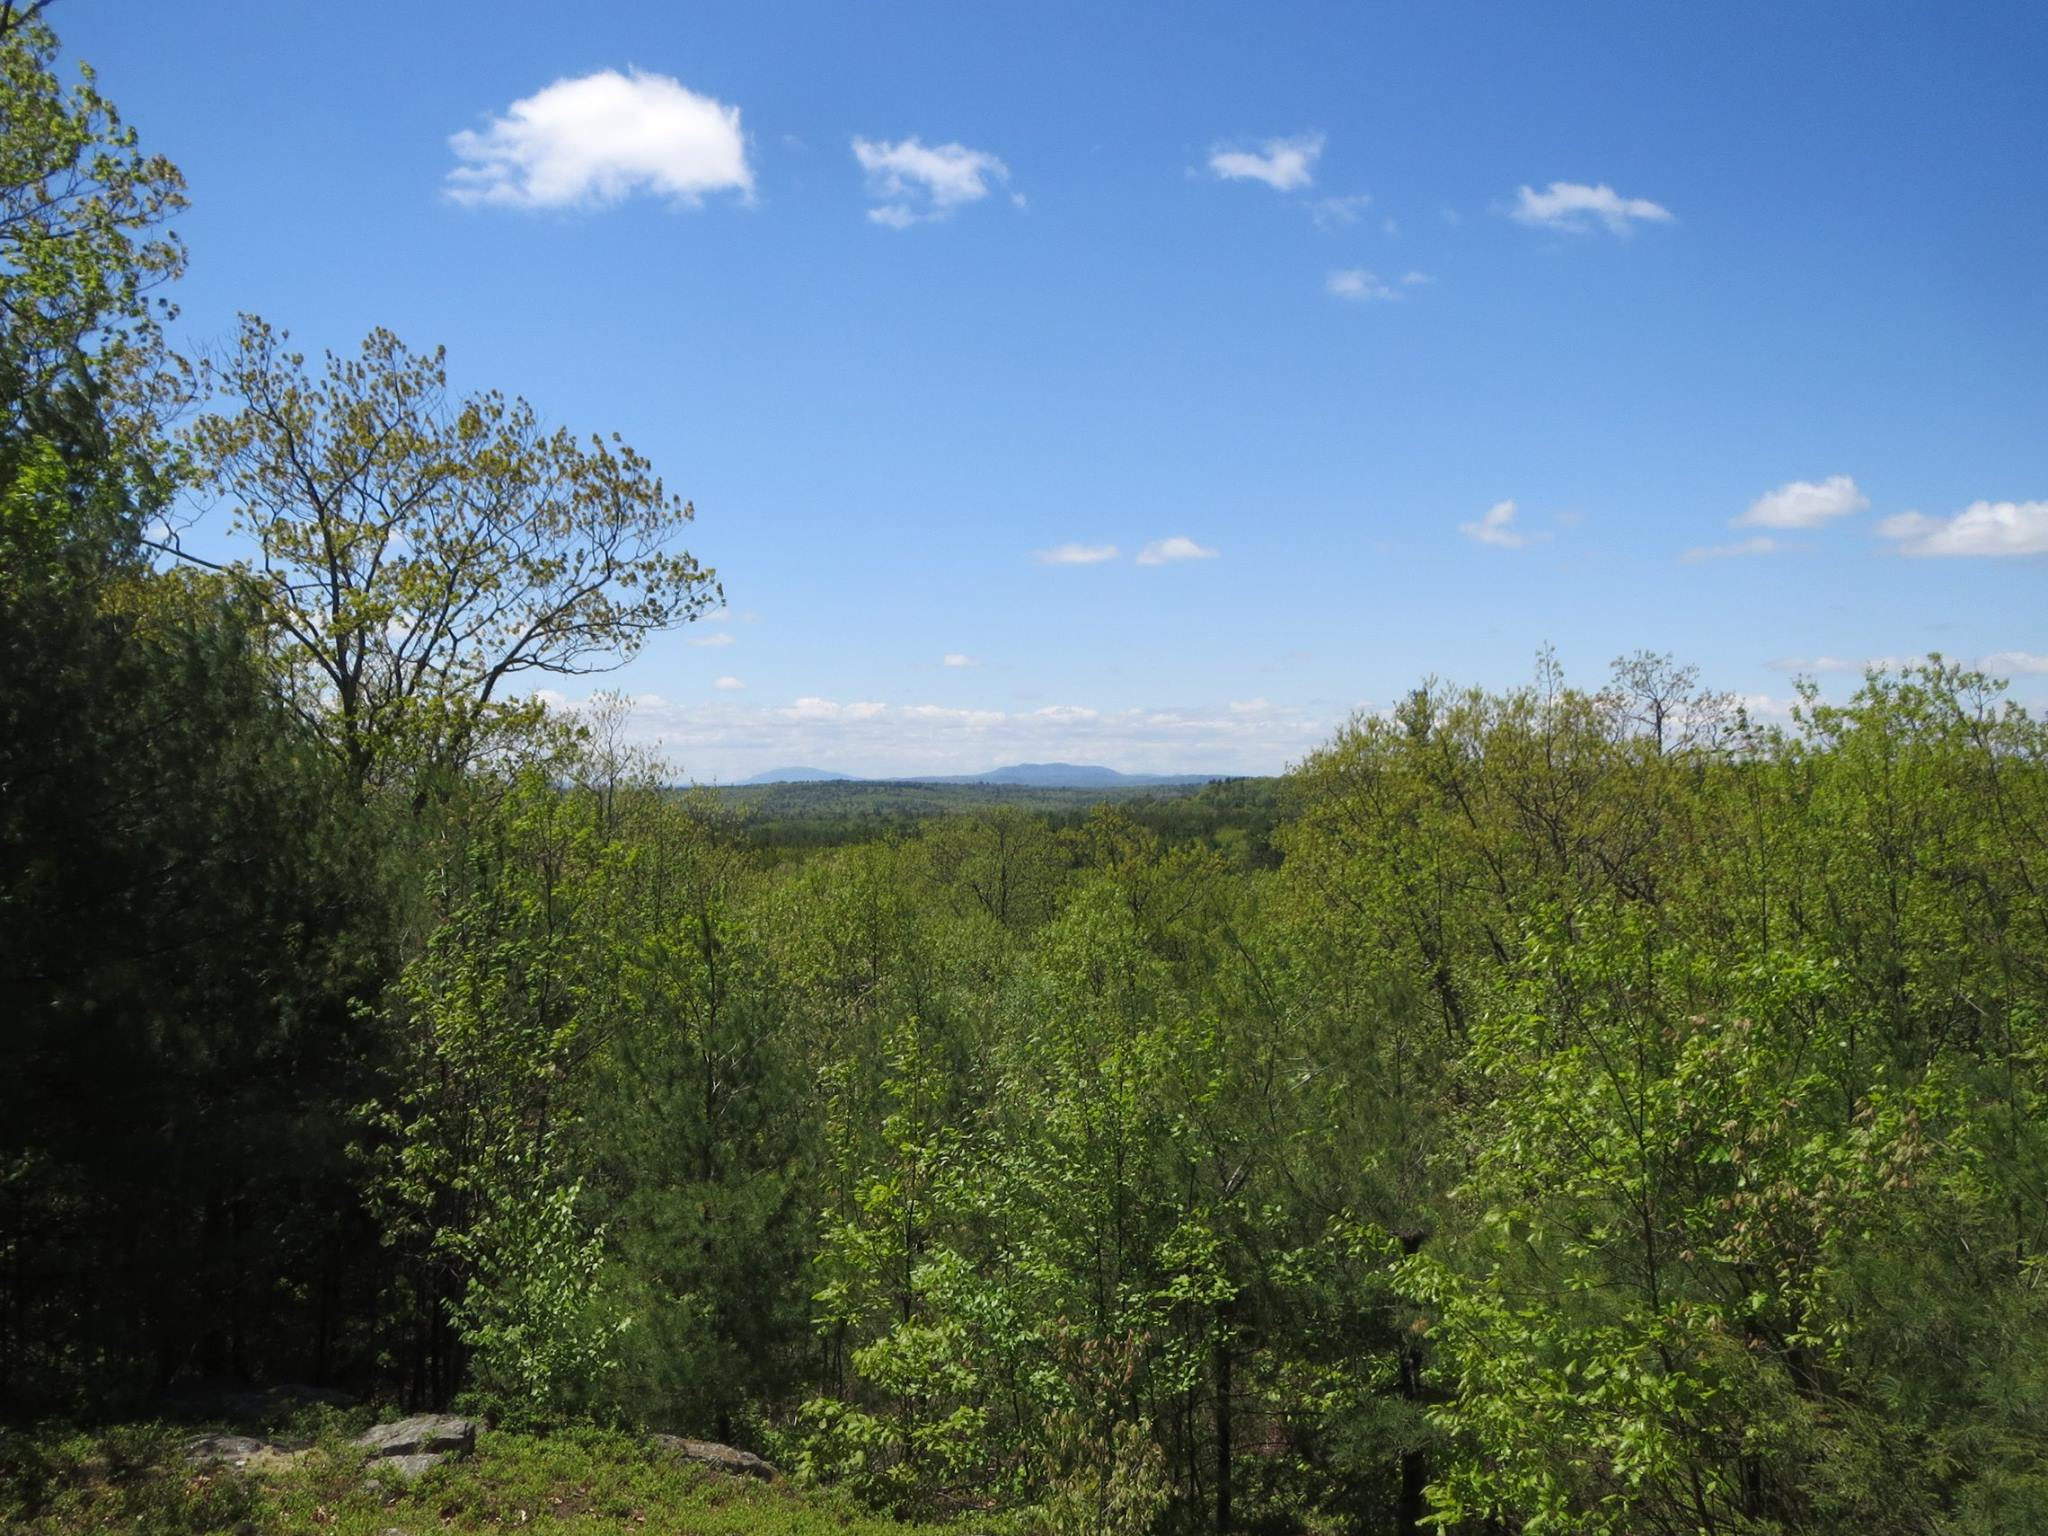 Landscape of trees, blue sky, a few wispy white clouds, and a small mountain in the distance.